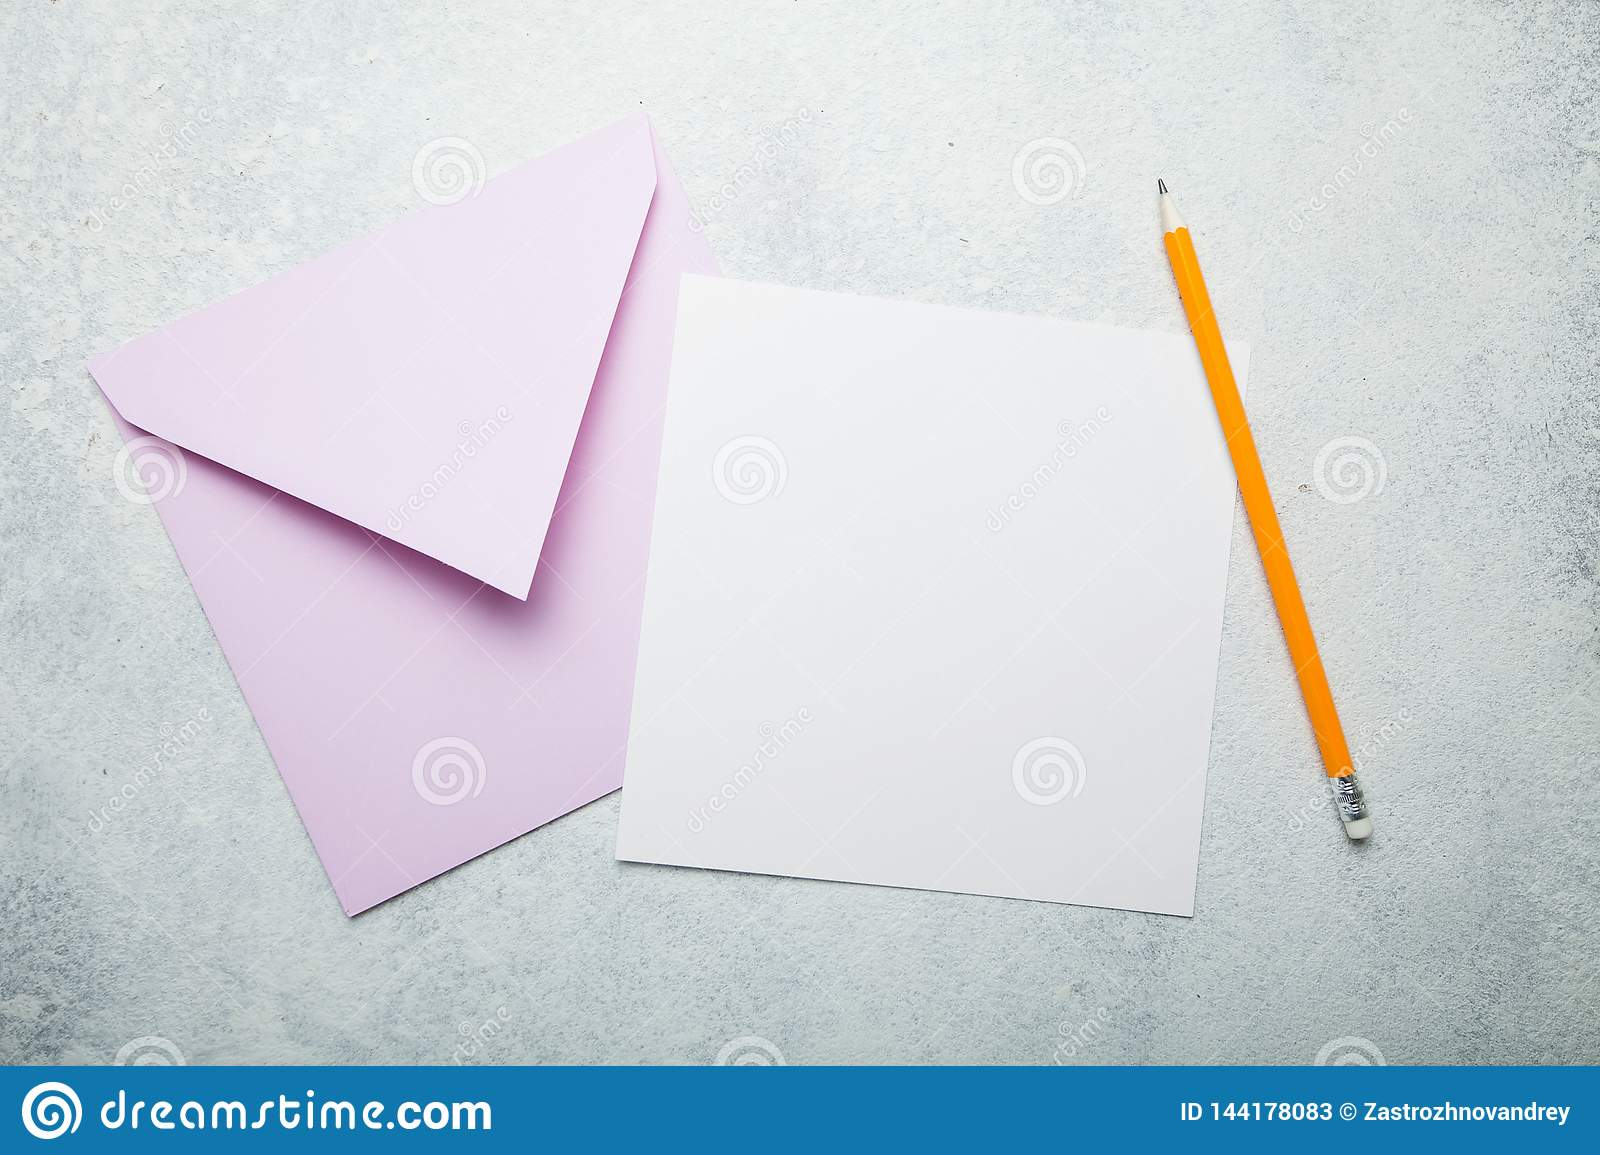 Invitation letter or postcard. An empty square piece of paper with space for text, a pink envelope and a pencil on a vintage white